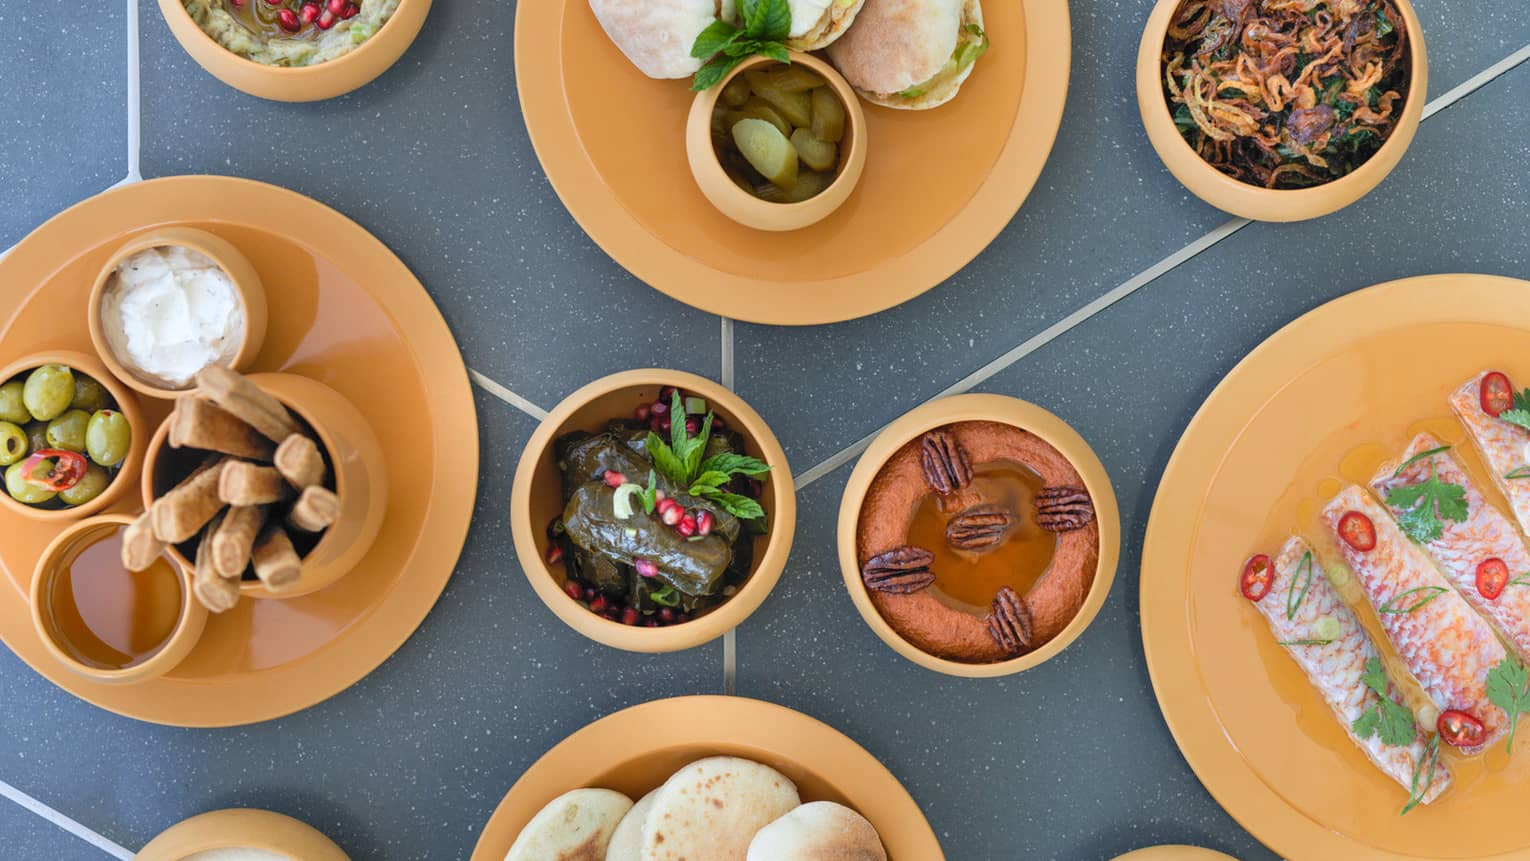 Aerial view of table with small bowls with hot and cold Lebanese mezze dishes